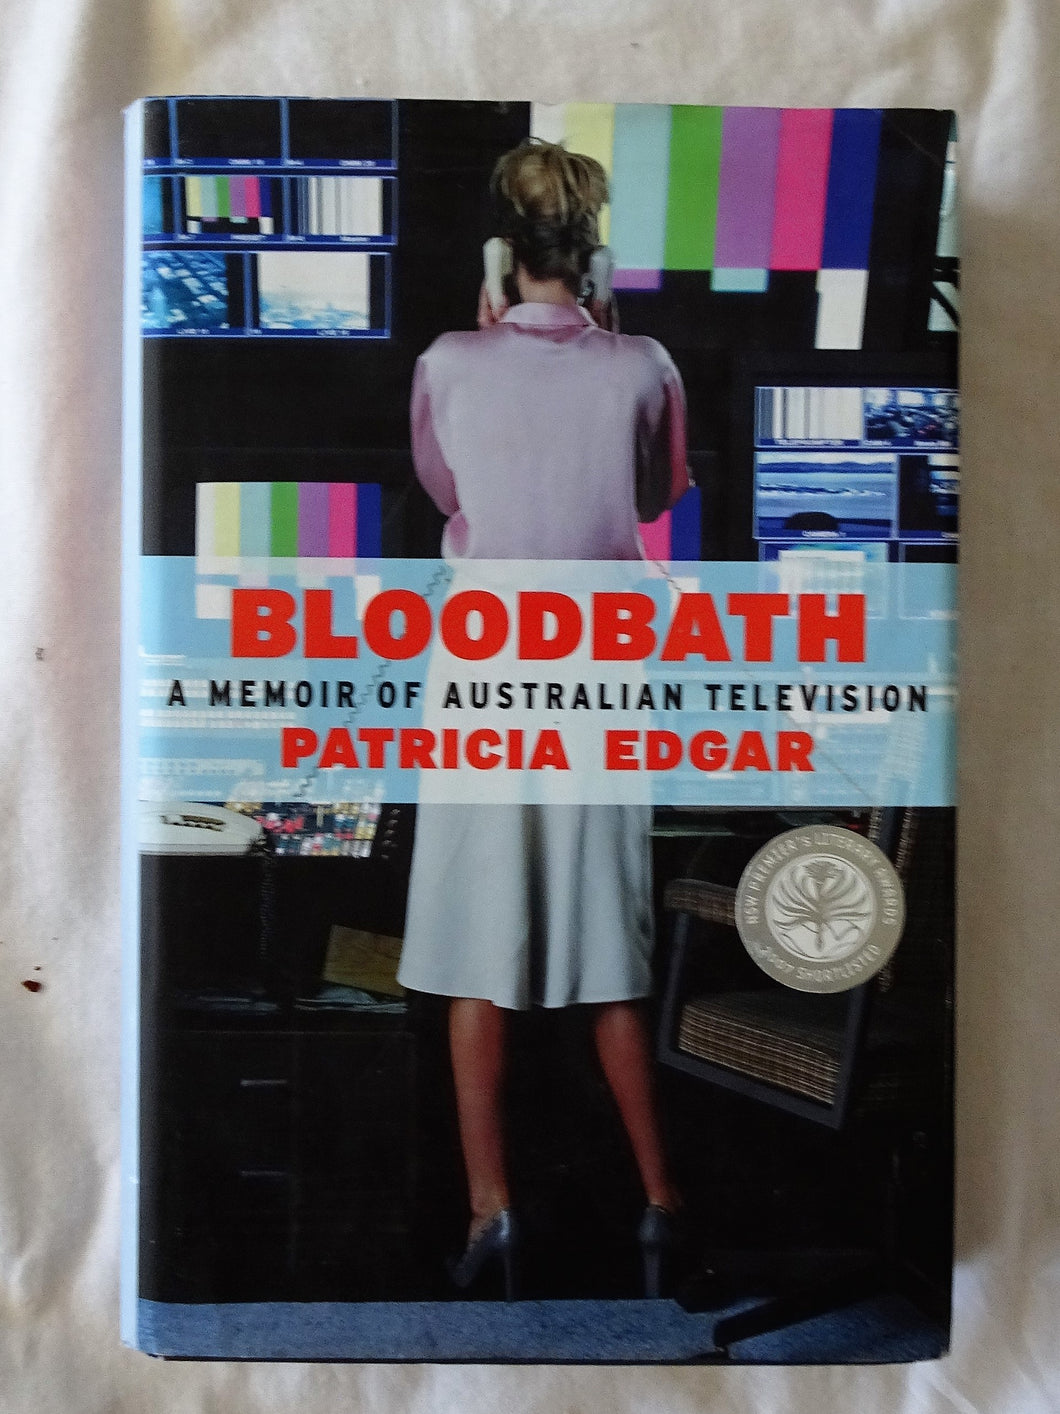 Bloodbath by Patricia Edgar